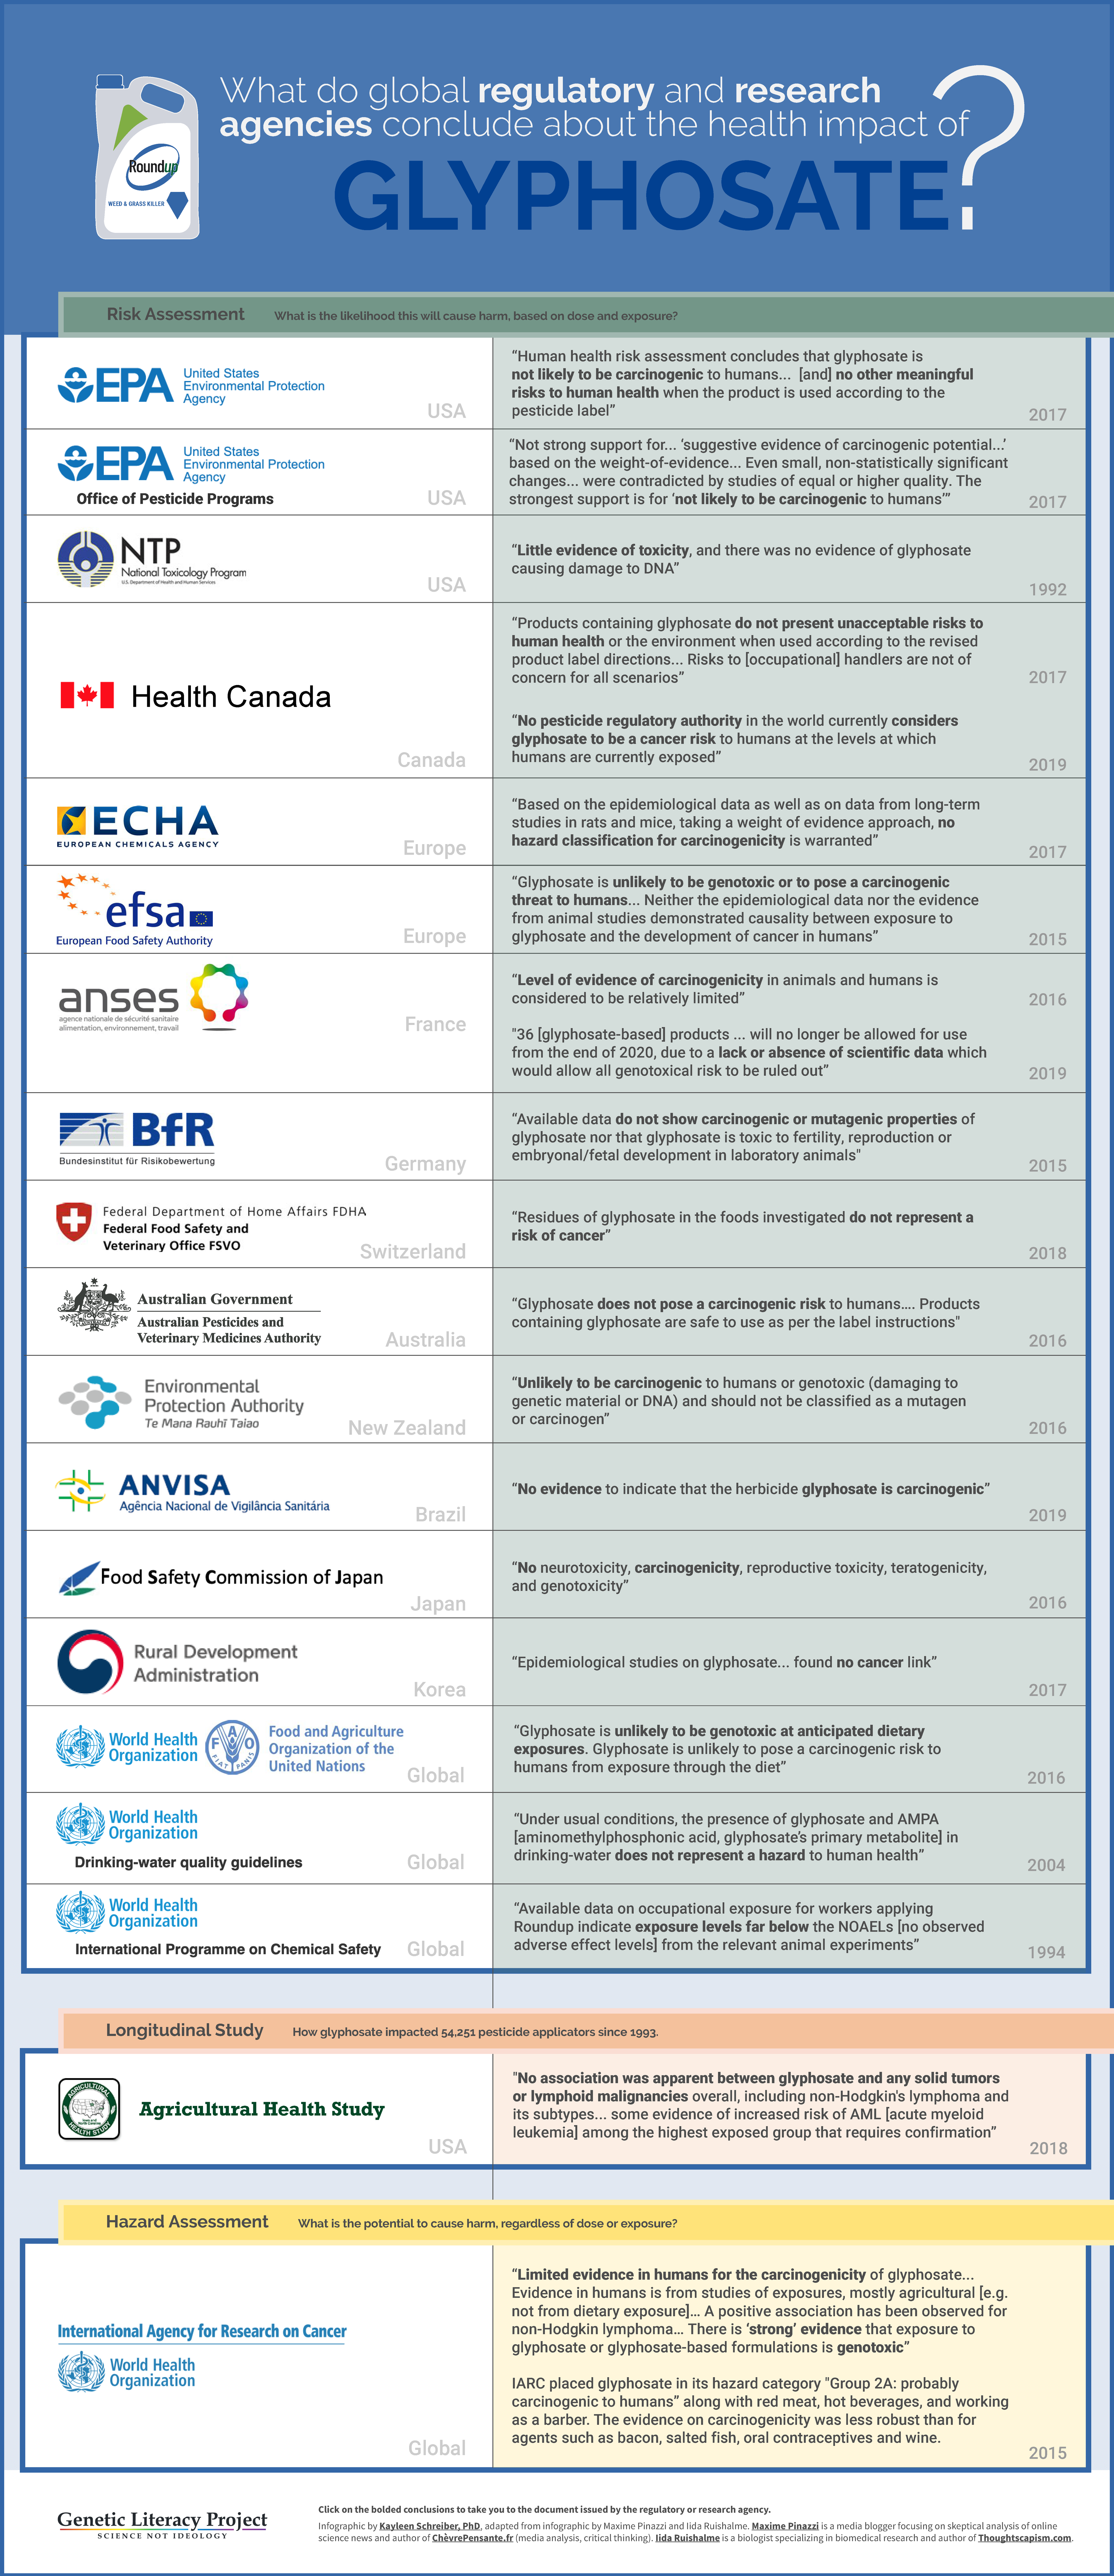 What do global regulatory and research agencies conclude about the health impact of glyphosate?